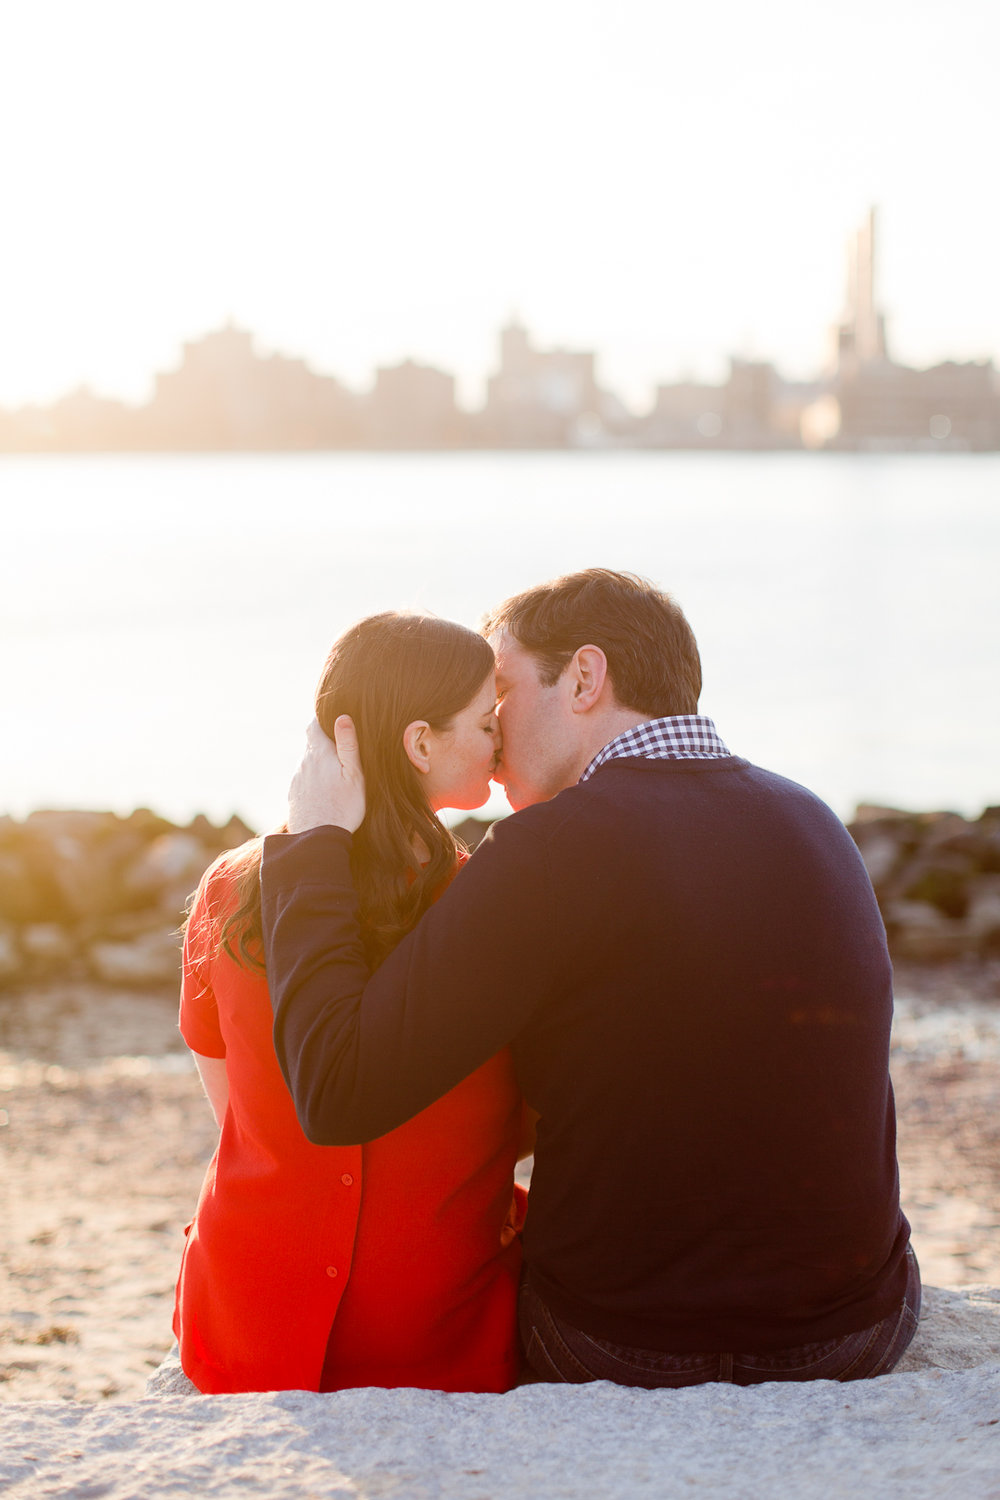 Melissa Kruse Photography - Tess & Brendan Engagement Photos-77.jpg